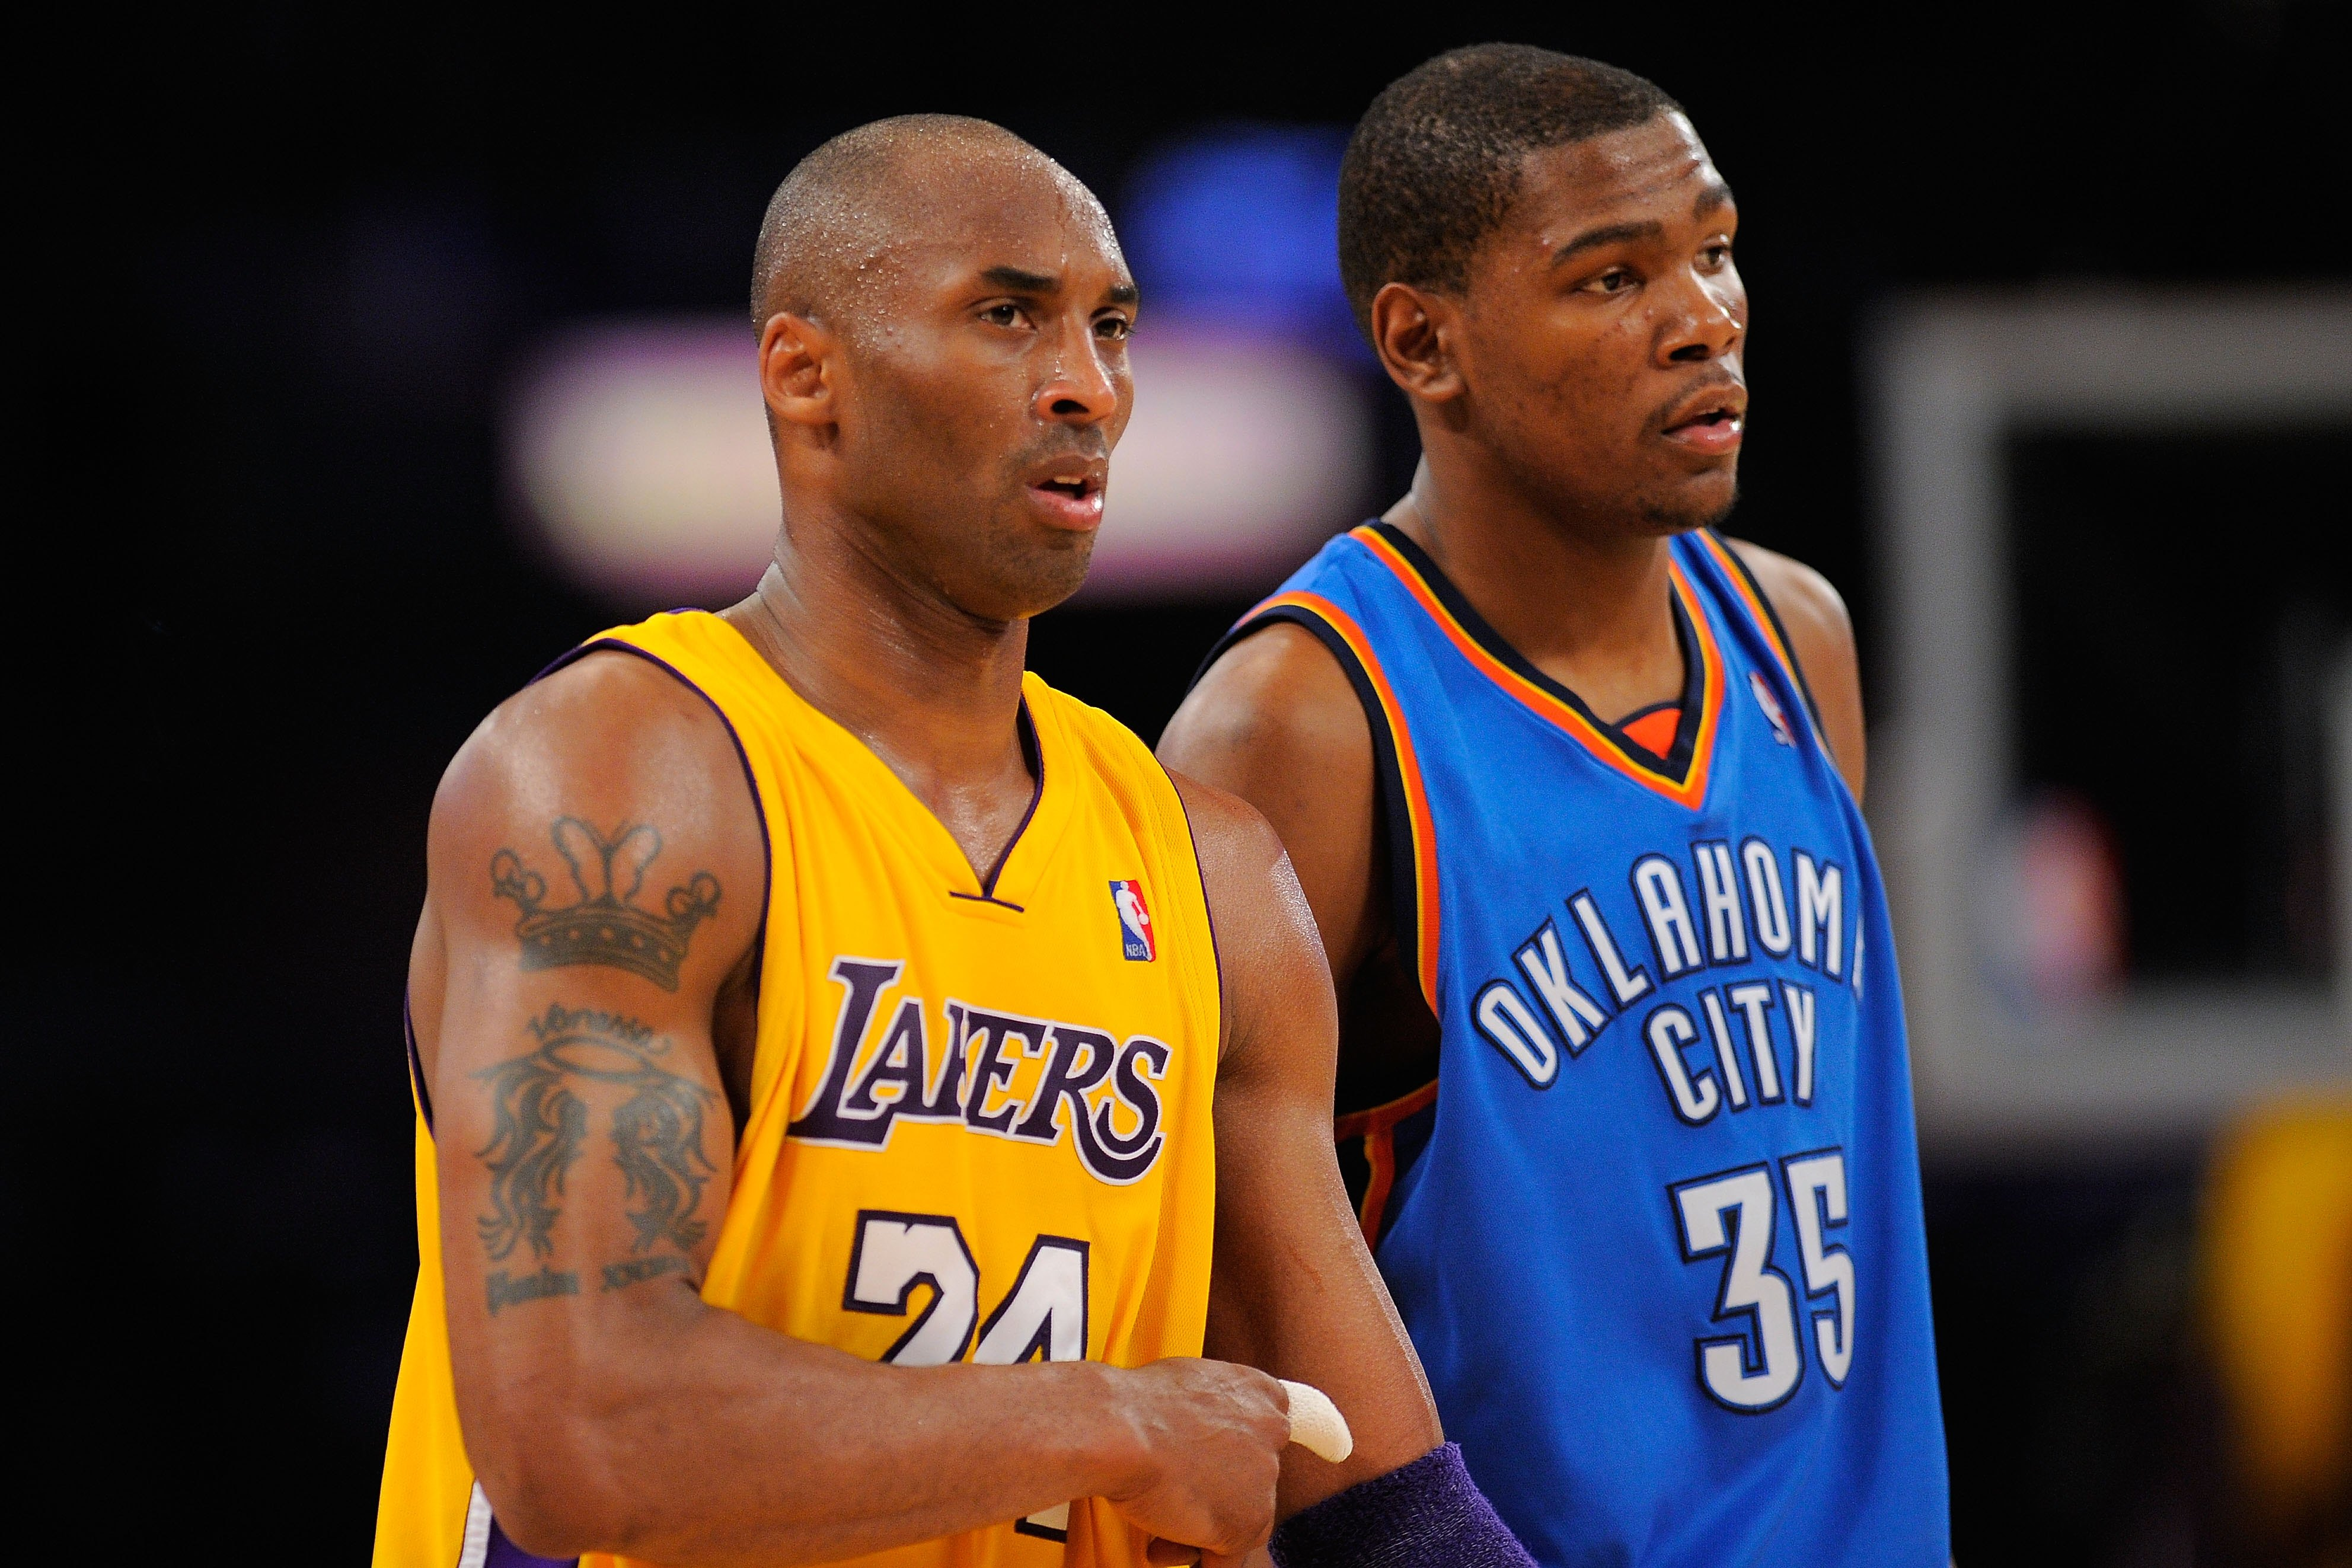 Oklahoma City Thunder v Los Angeles Lakers, Game 5